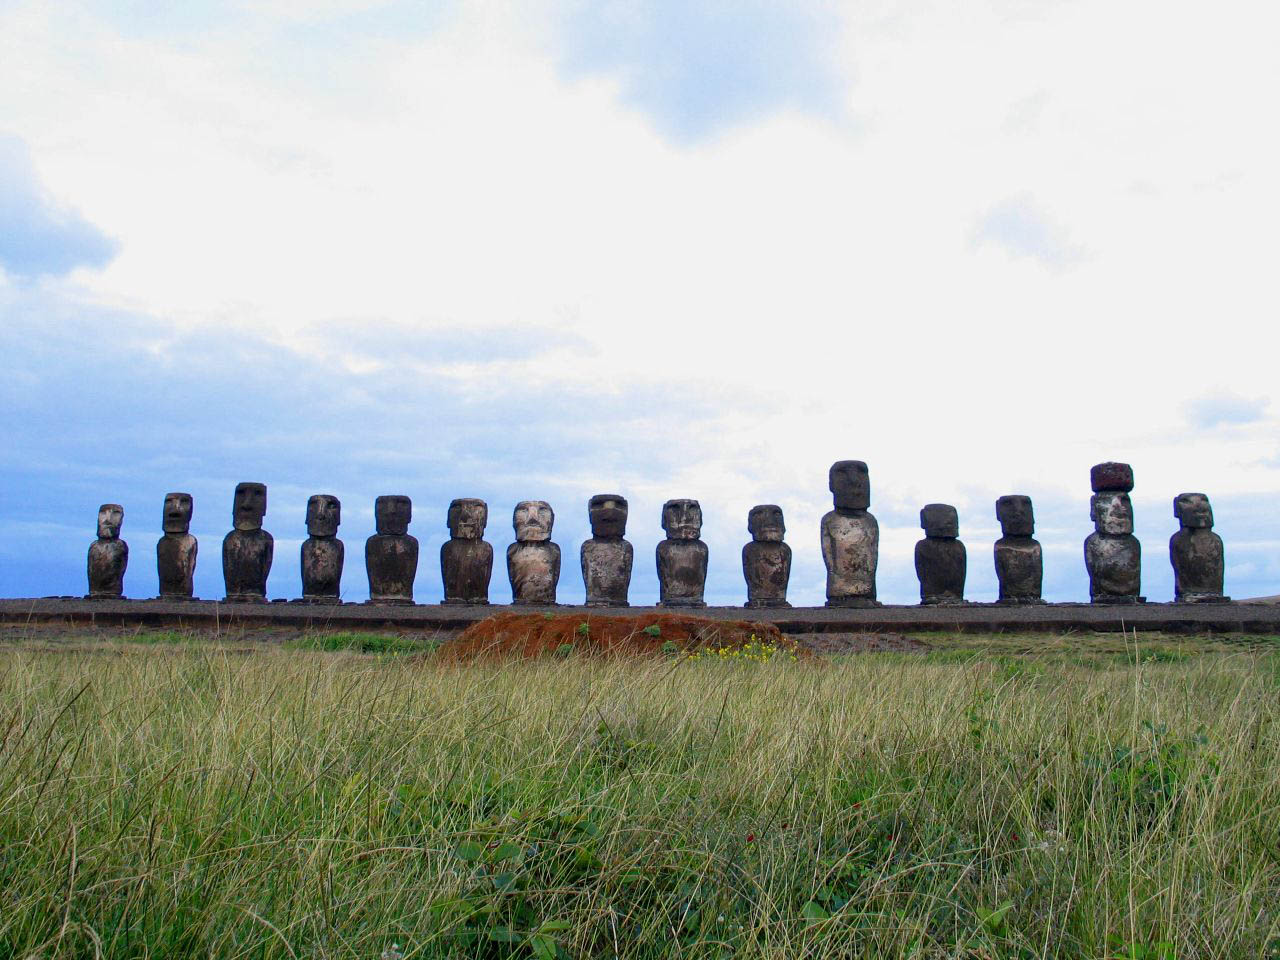 rapa nui12 Gigantic Moai Statues and Heads in Polynesian Easter Island